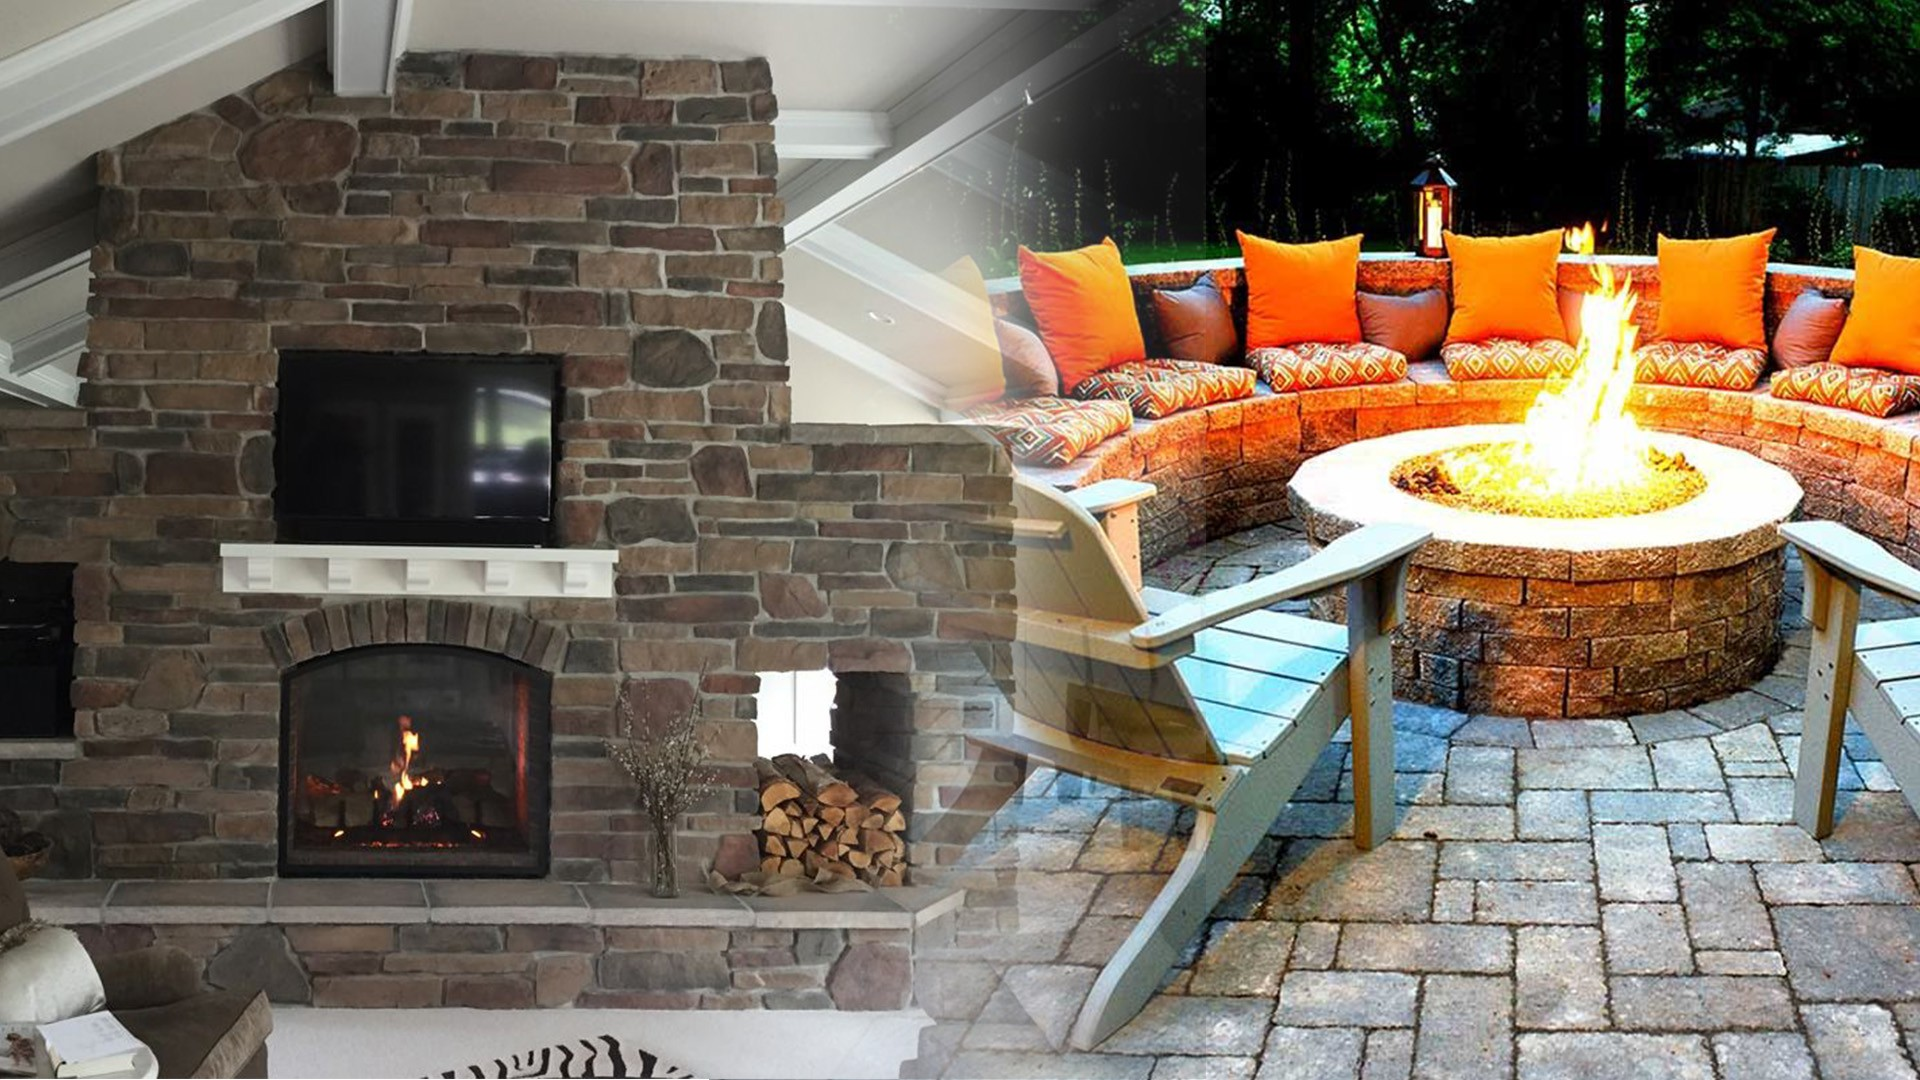 Outdoor Fireplaces & Fire Pits-College Station TX Professional Landscapers & Outdoor Living Designs-We offer Landscape Design, Outdoor Patios & Pergolas, Outdoor Living Spaces, Stonescapes, Residential & Commercial Landscaping, Irrigation Installation & Repairs, Drainage Systems, Landscape Lighting, Outdoor Living Spaces, Tree Service, Lawn Service, and more.